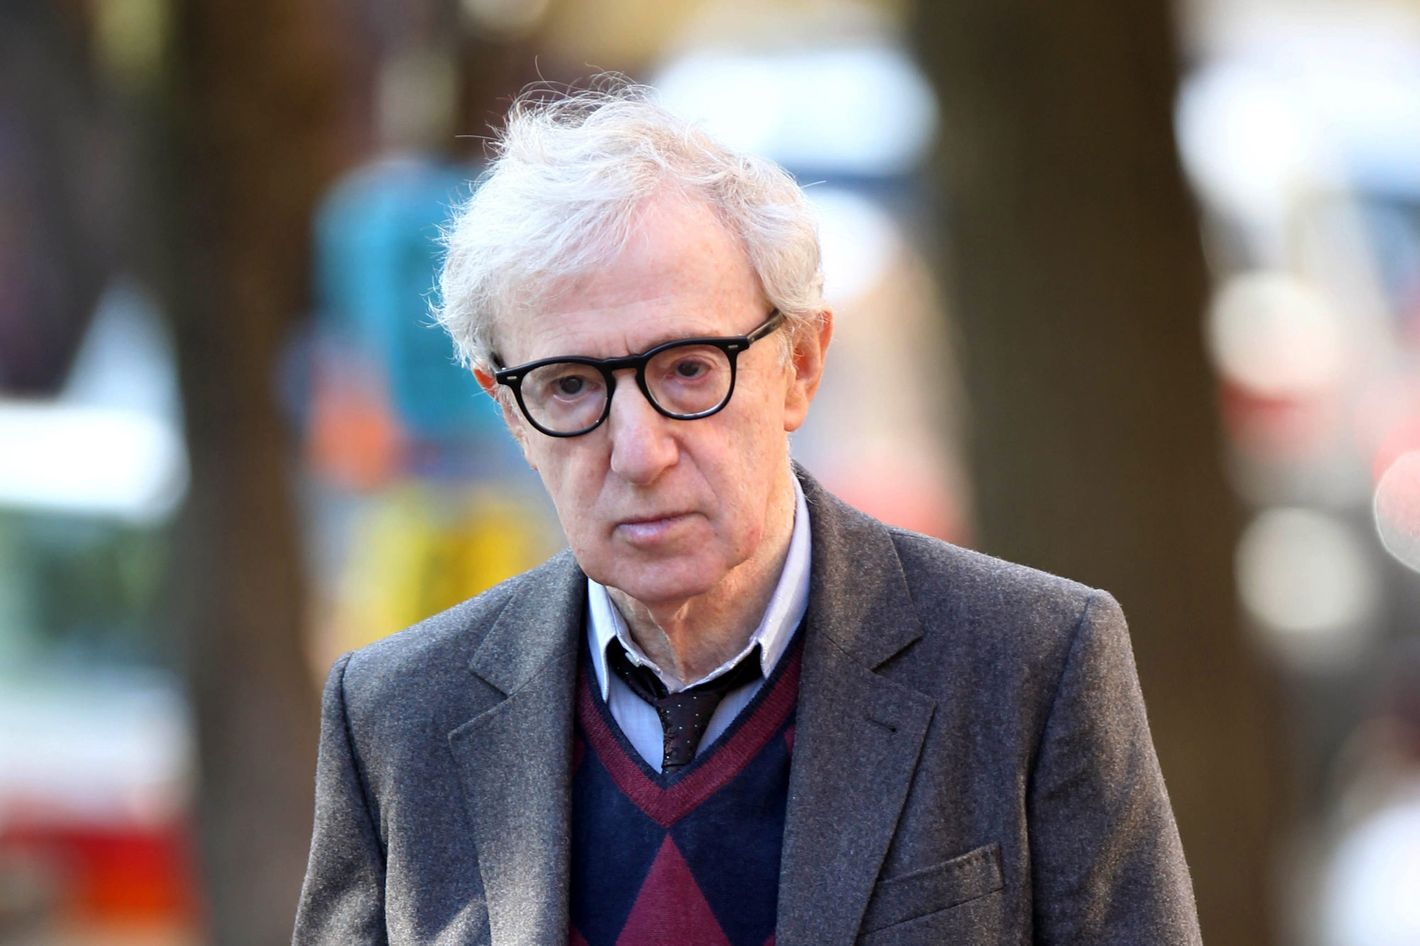 a brief history of woody allen being creepy about young girls